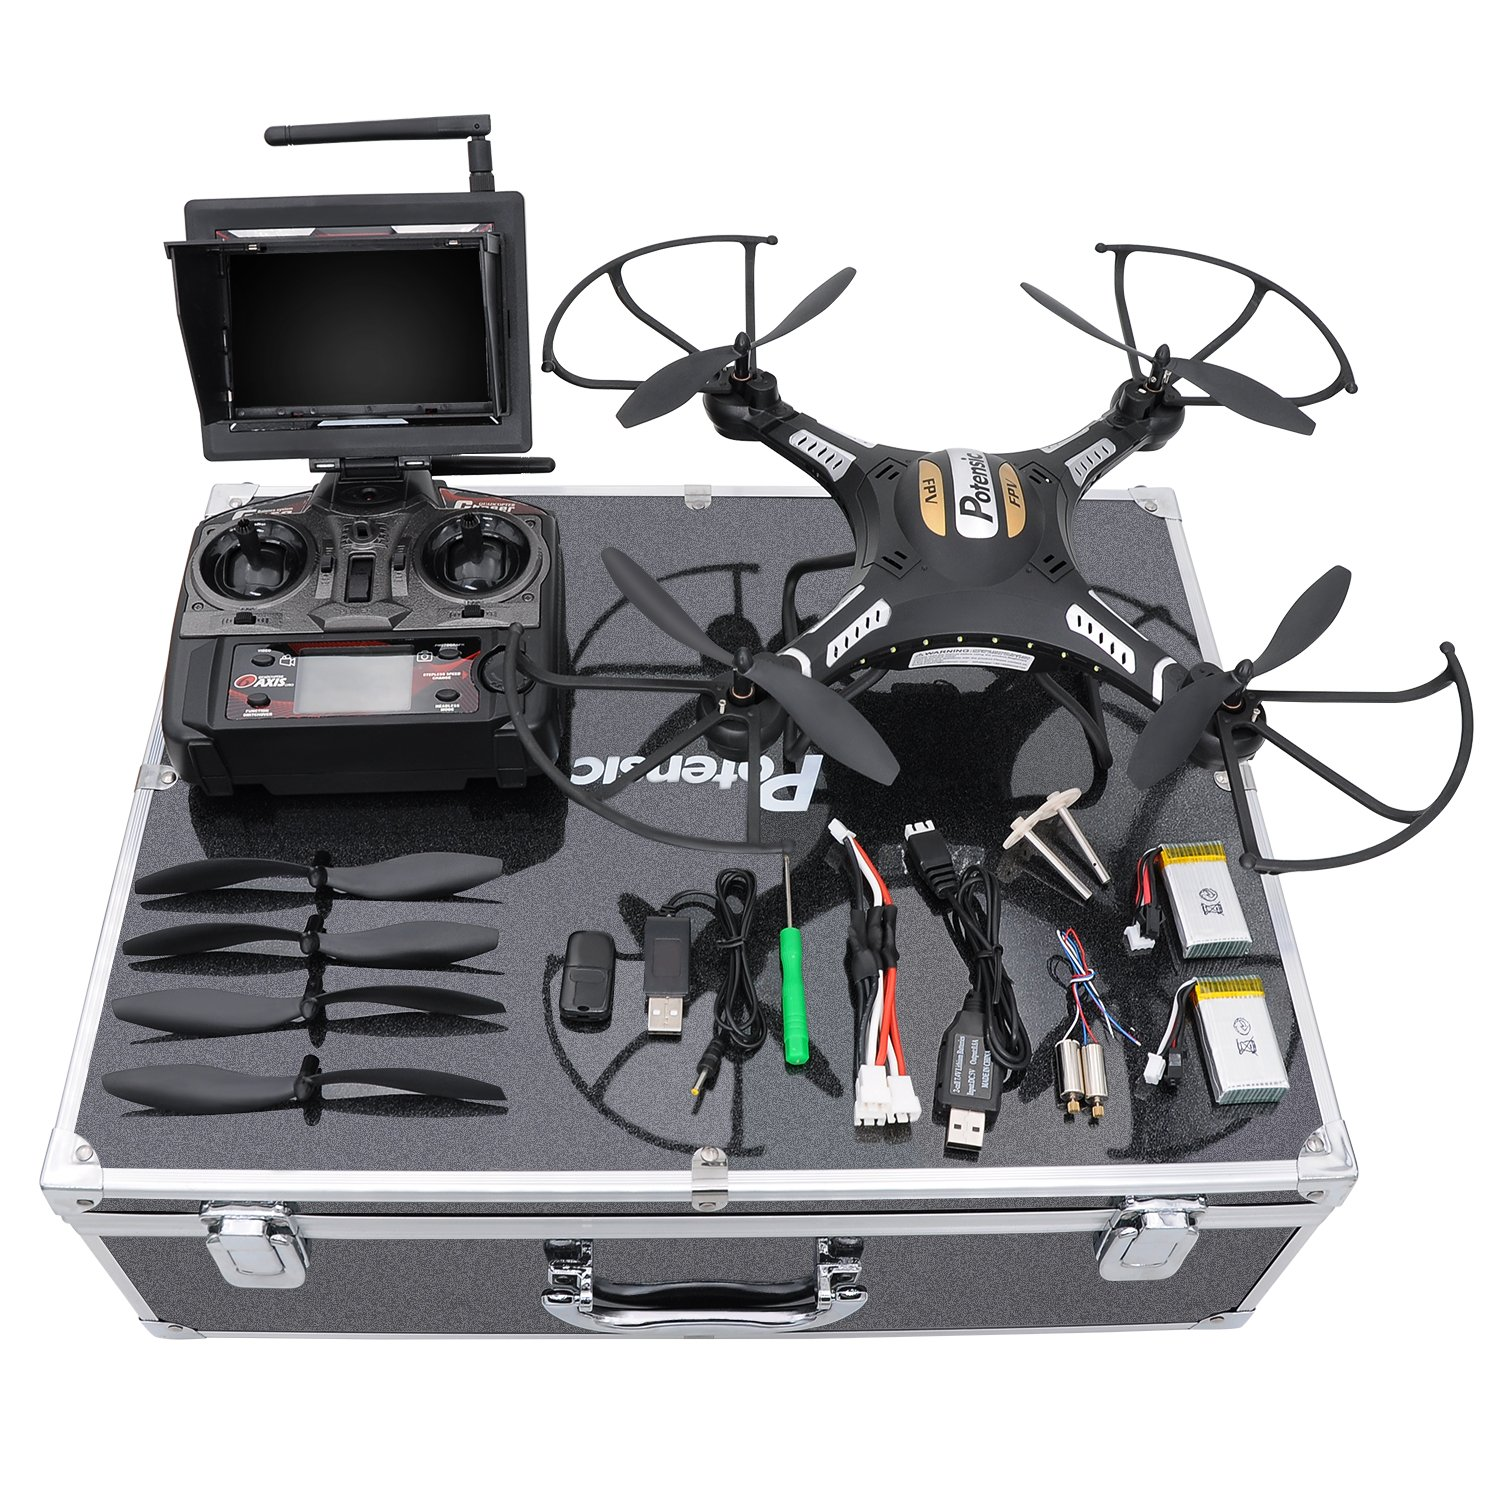 e38e5679673 This Potensic Drone is a great drone for beginners because it comes with  everything that you would need to learn about drones. With our link to  amazon